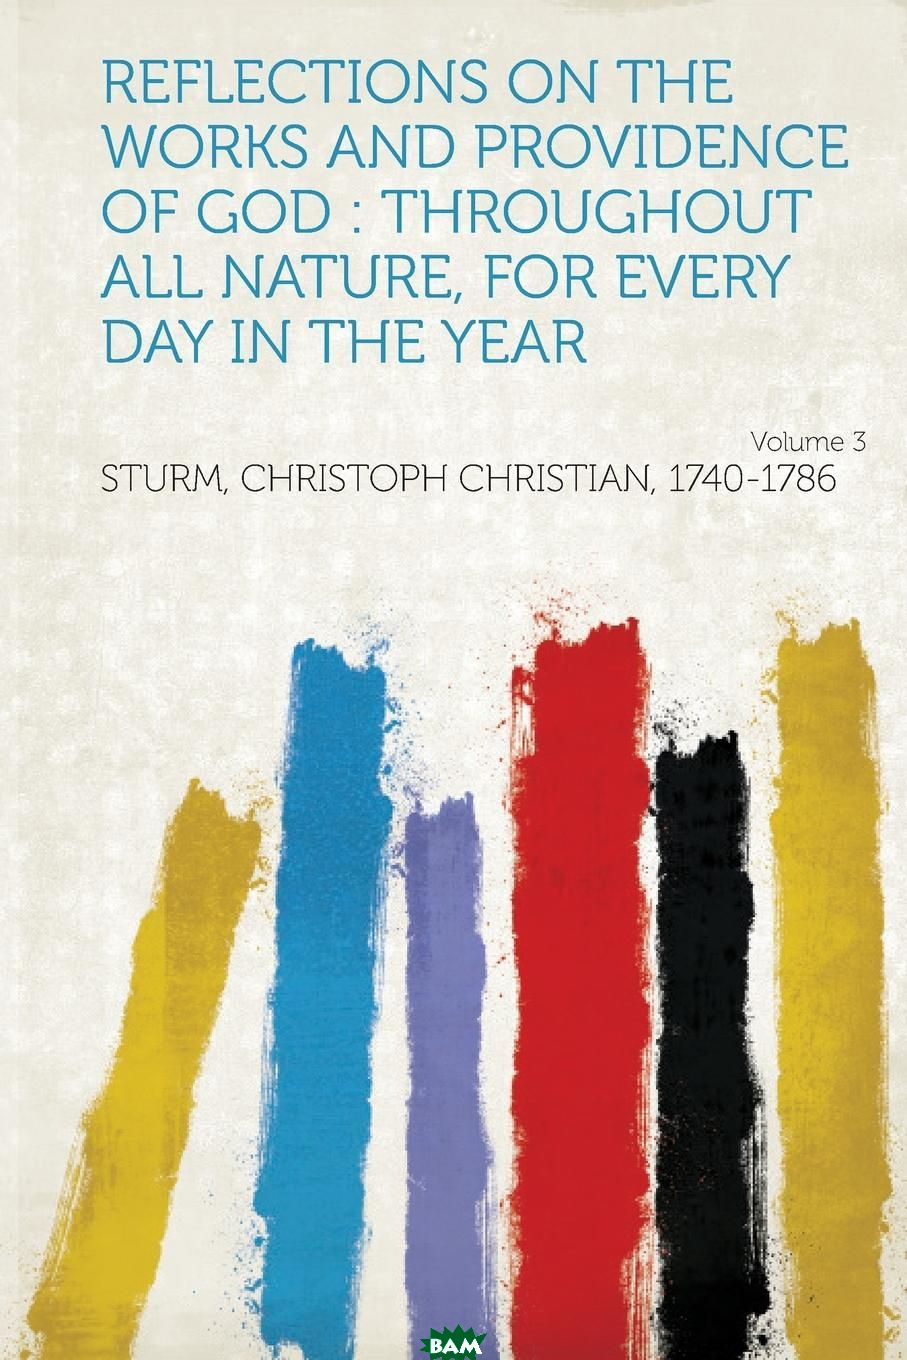 Купить Reflections on the Works and Providence of God. Throughout All Nature, for Every Day in the Year Volume 3, Sturm Christoph Christian 1740-1786, 9781314577945